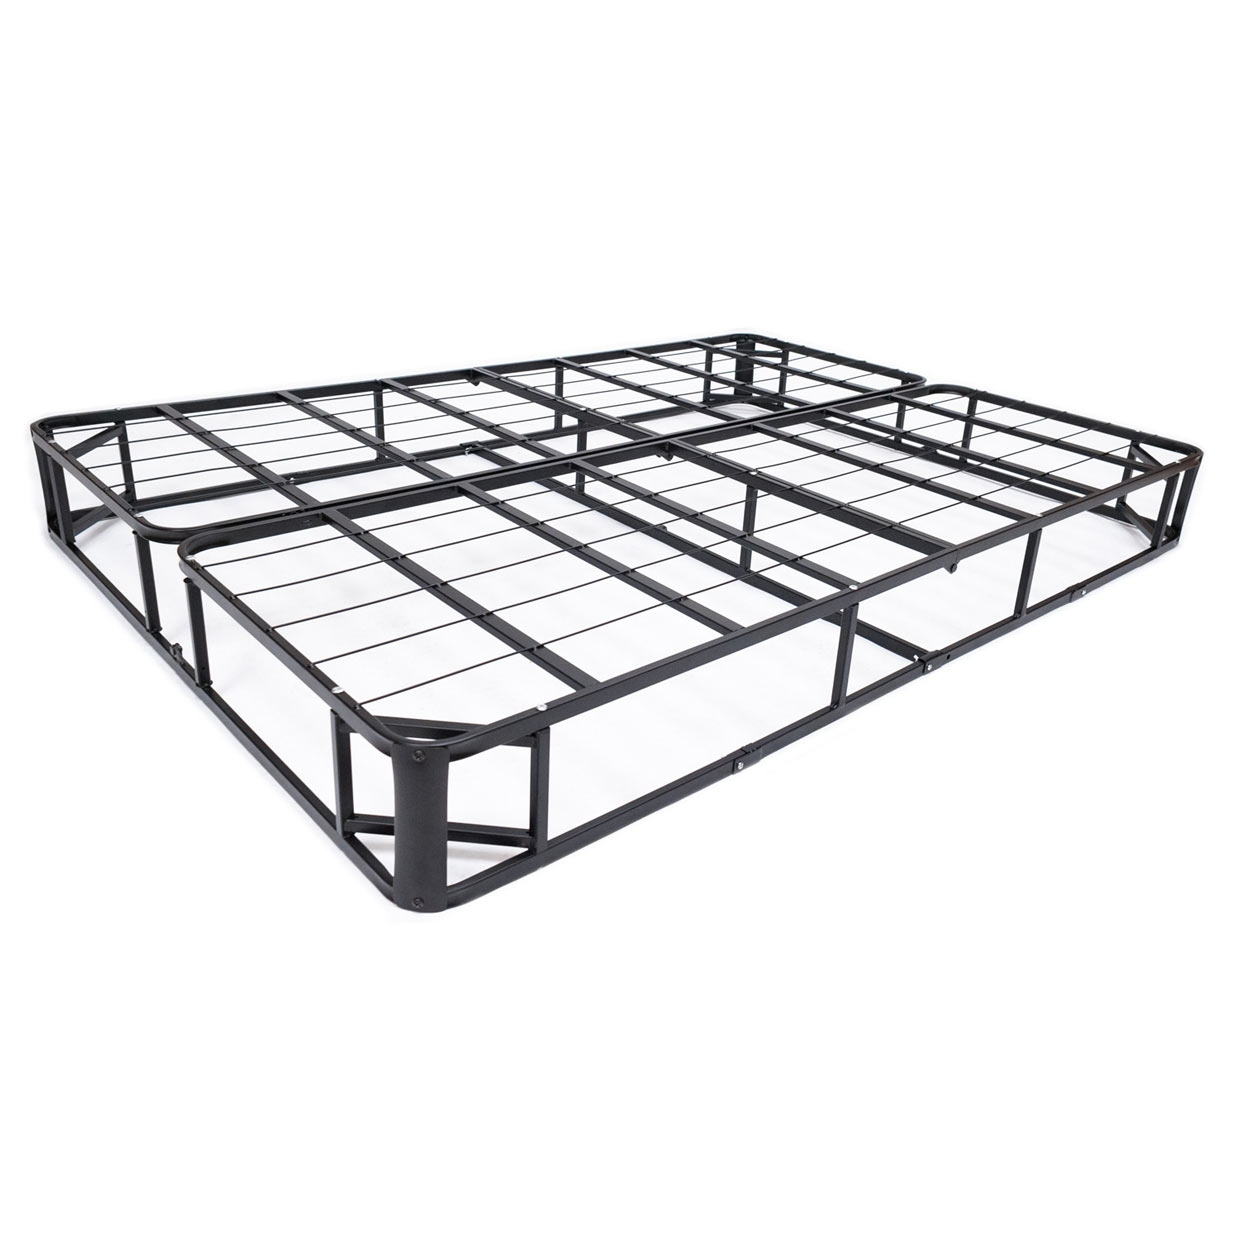 Box Spring Full Size Metal Boxspring Mattress Foundation With Jacquard Cover